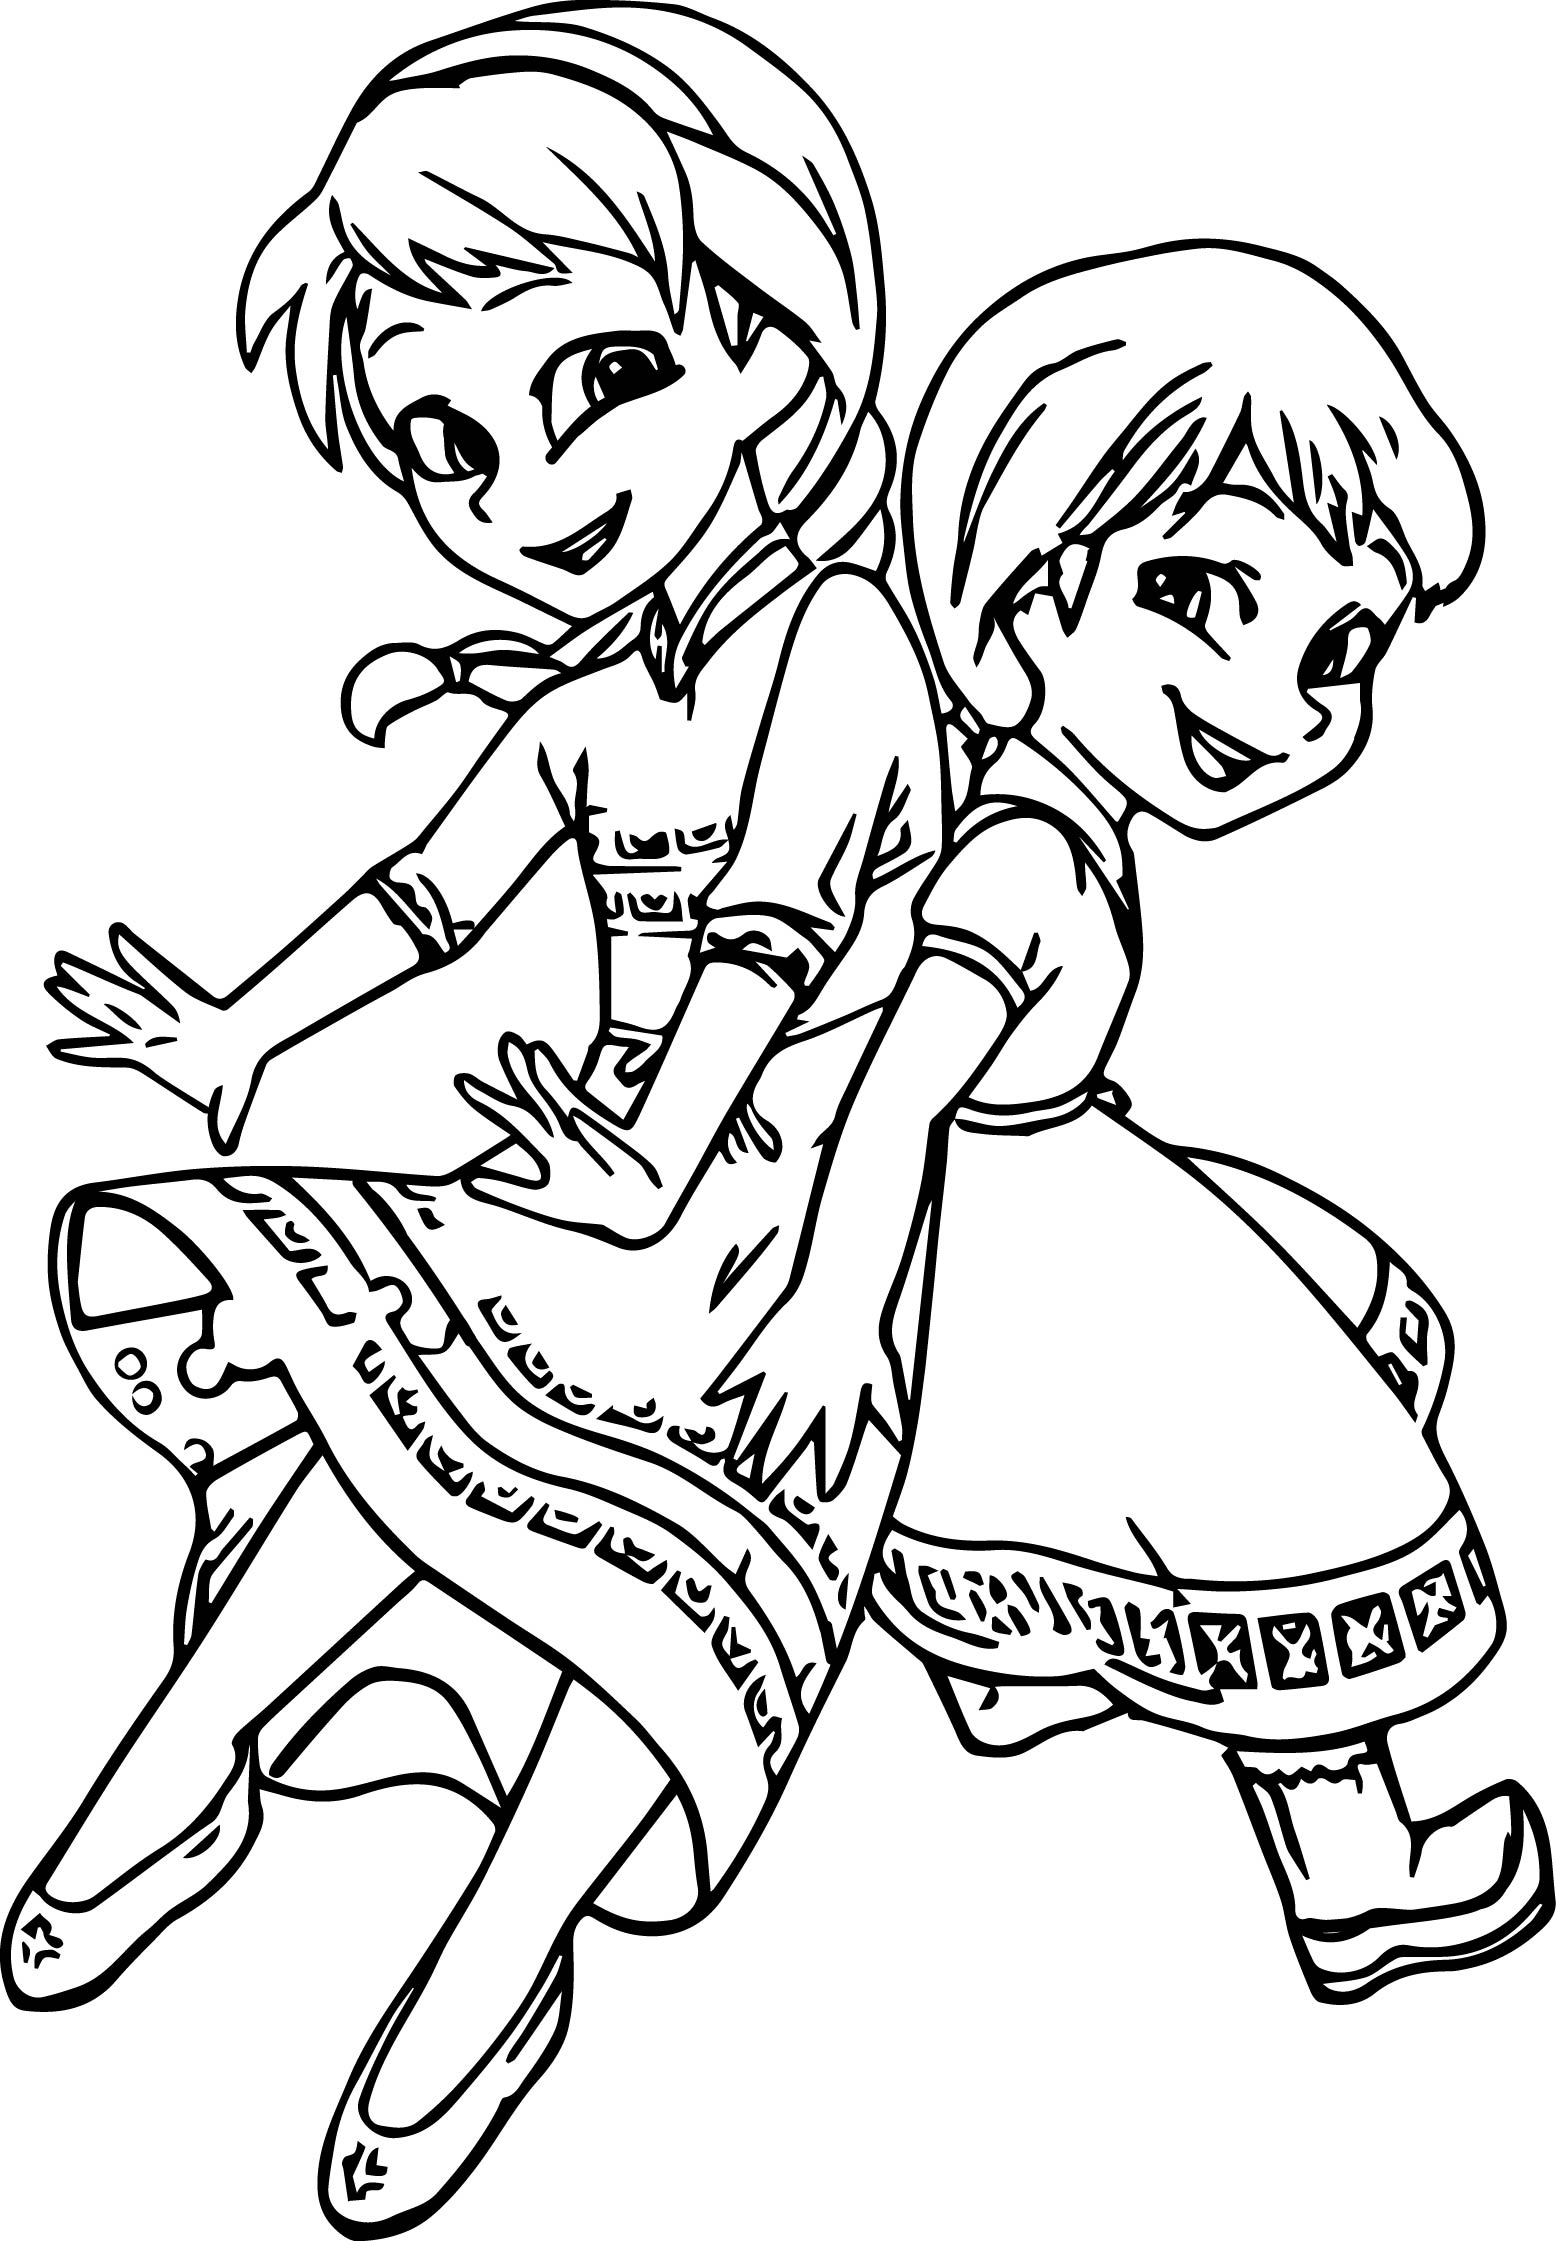 very cute girls anna elsa coloring page - Elsa And Anna Coloring Pages